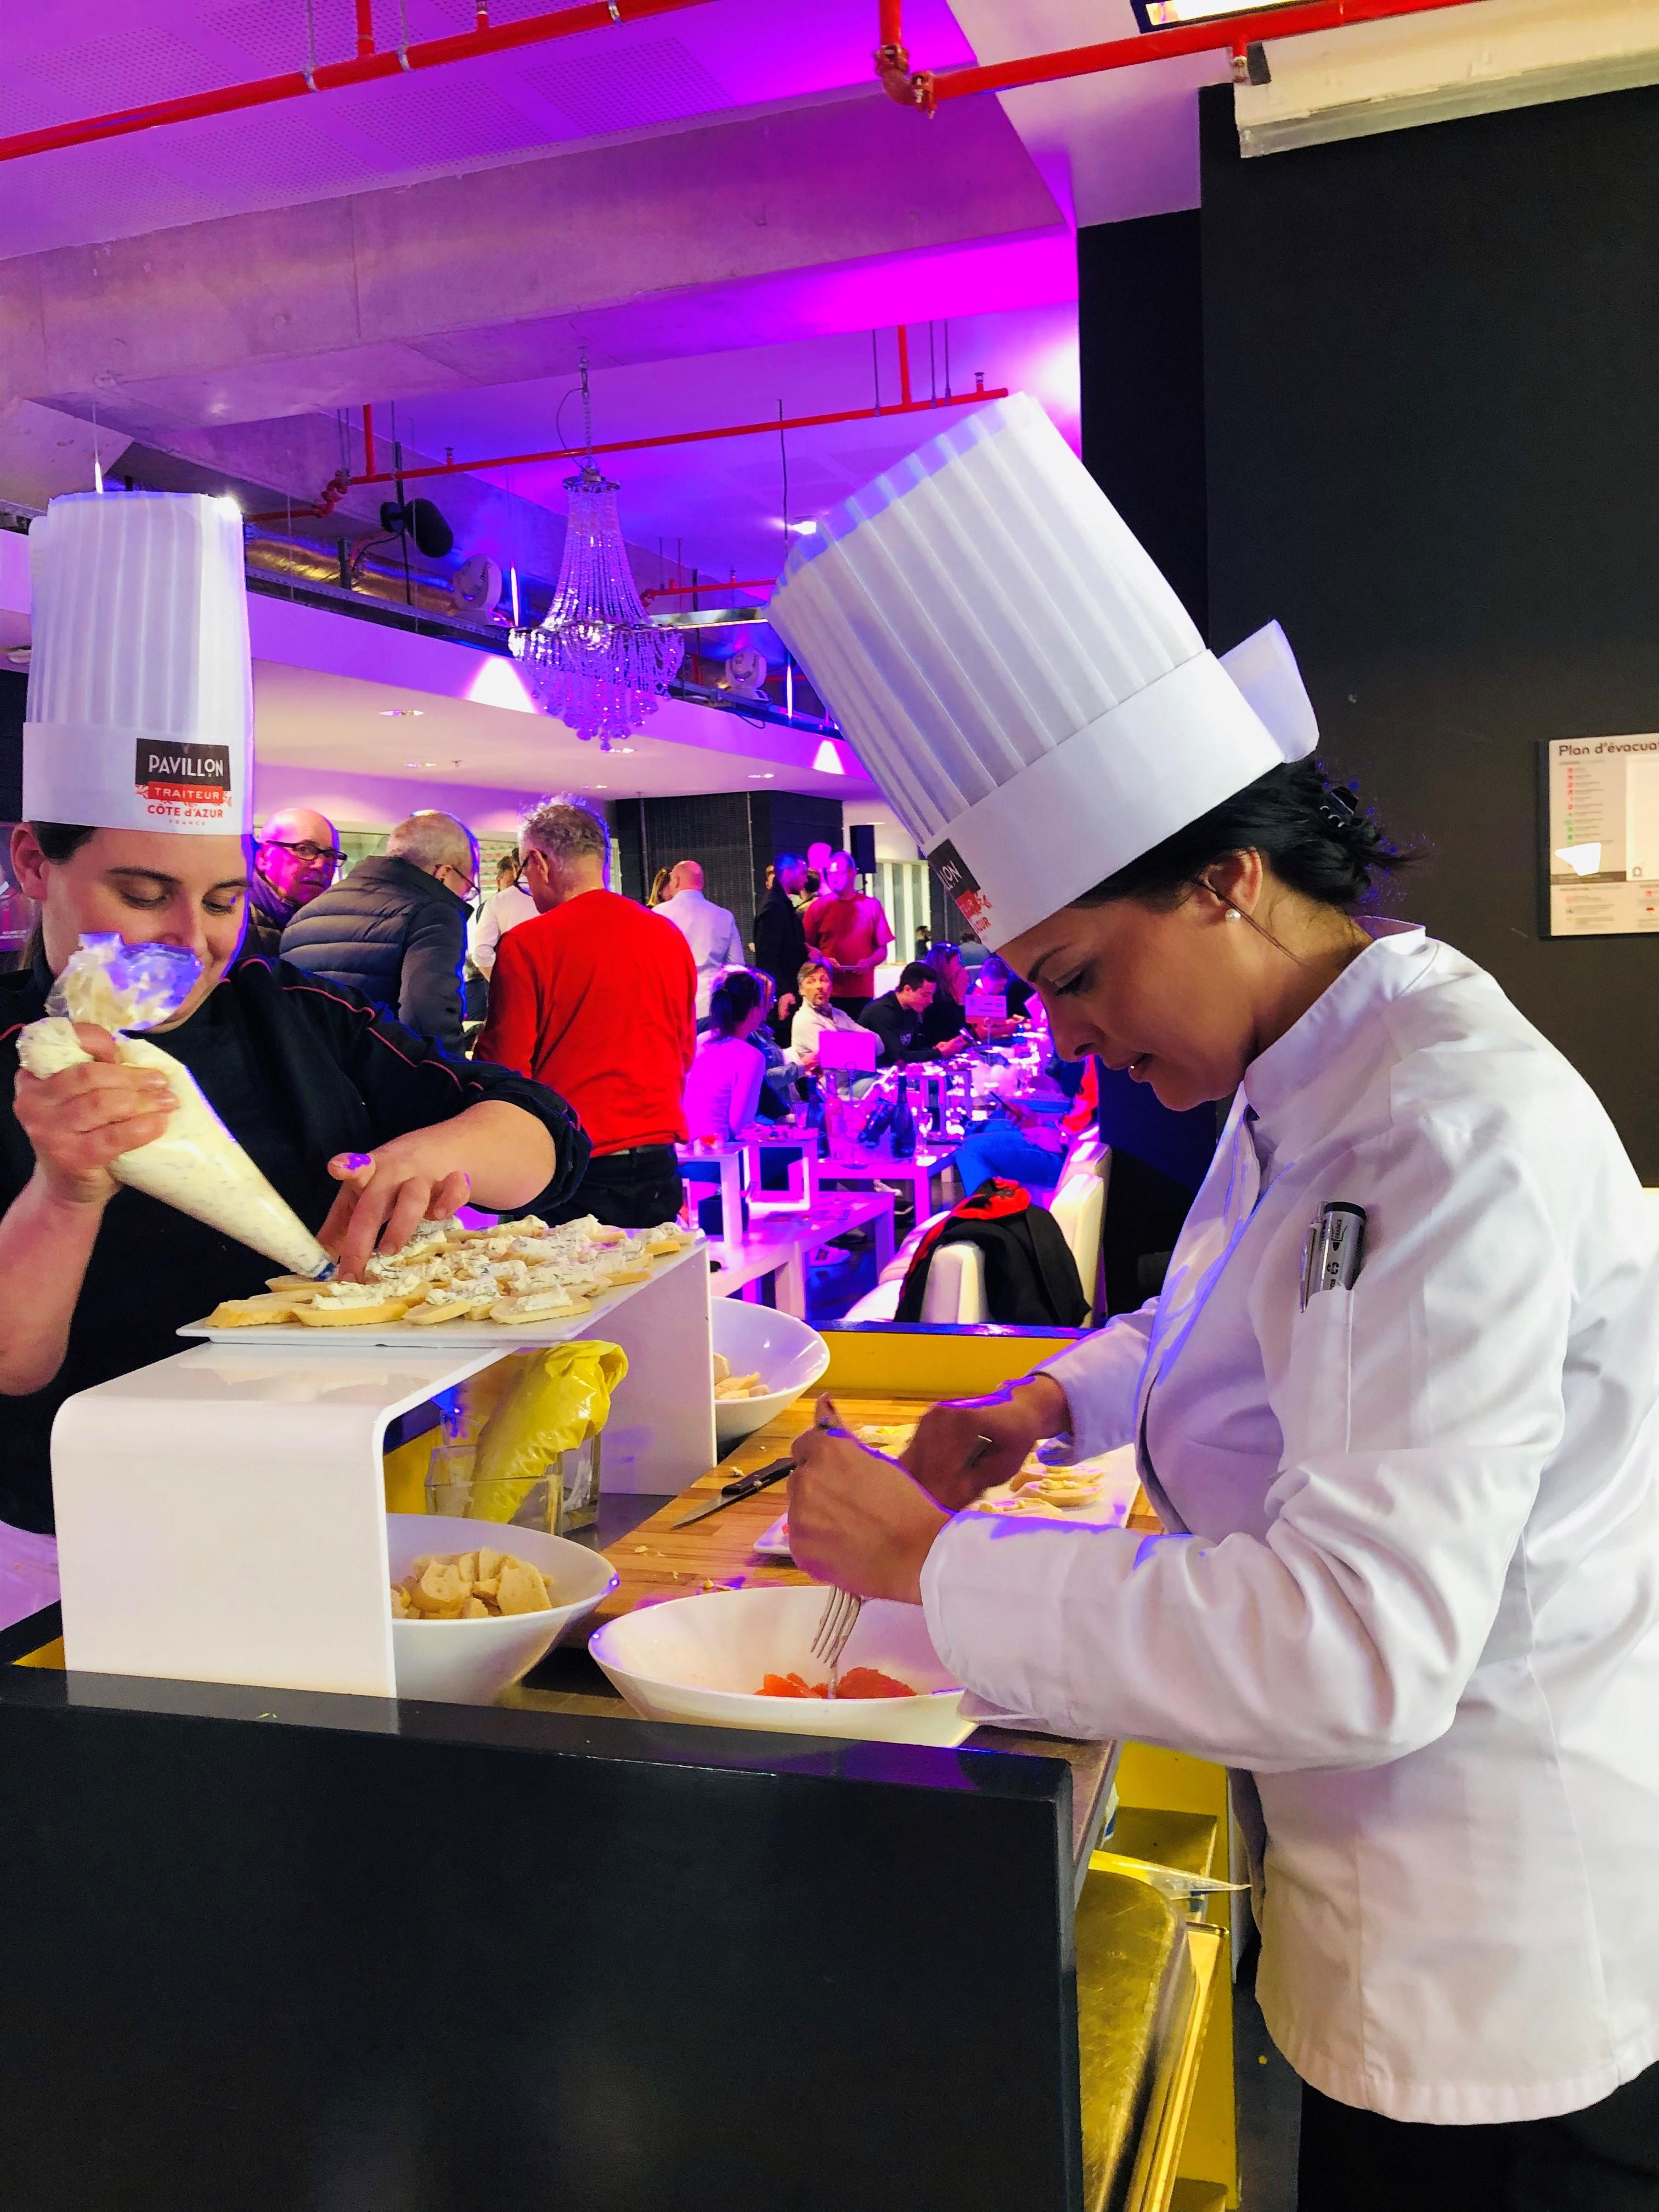 Chef Pavillon Traiteur + salon VIP